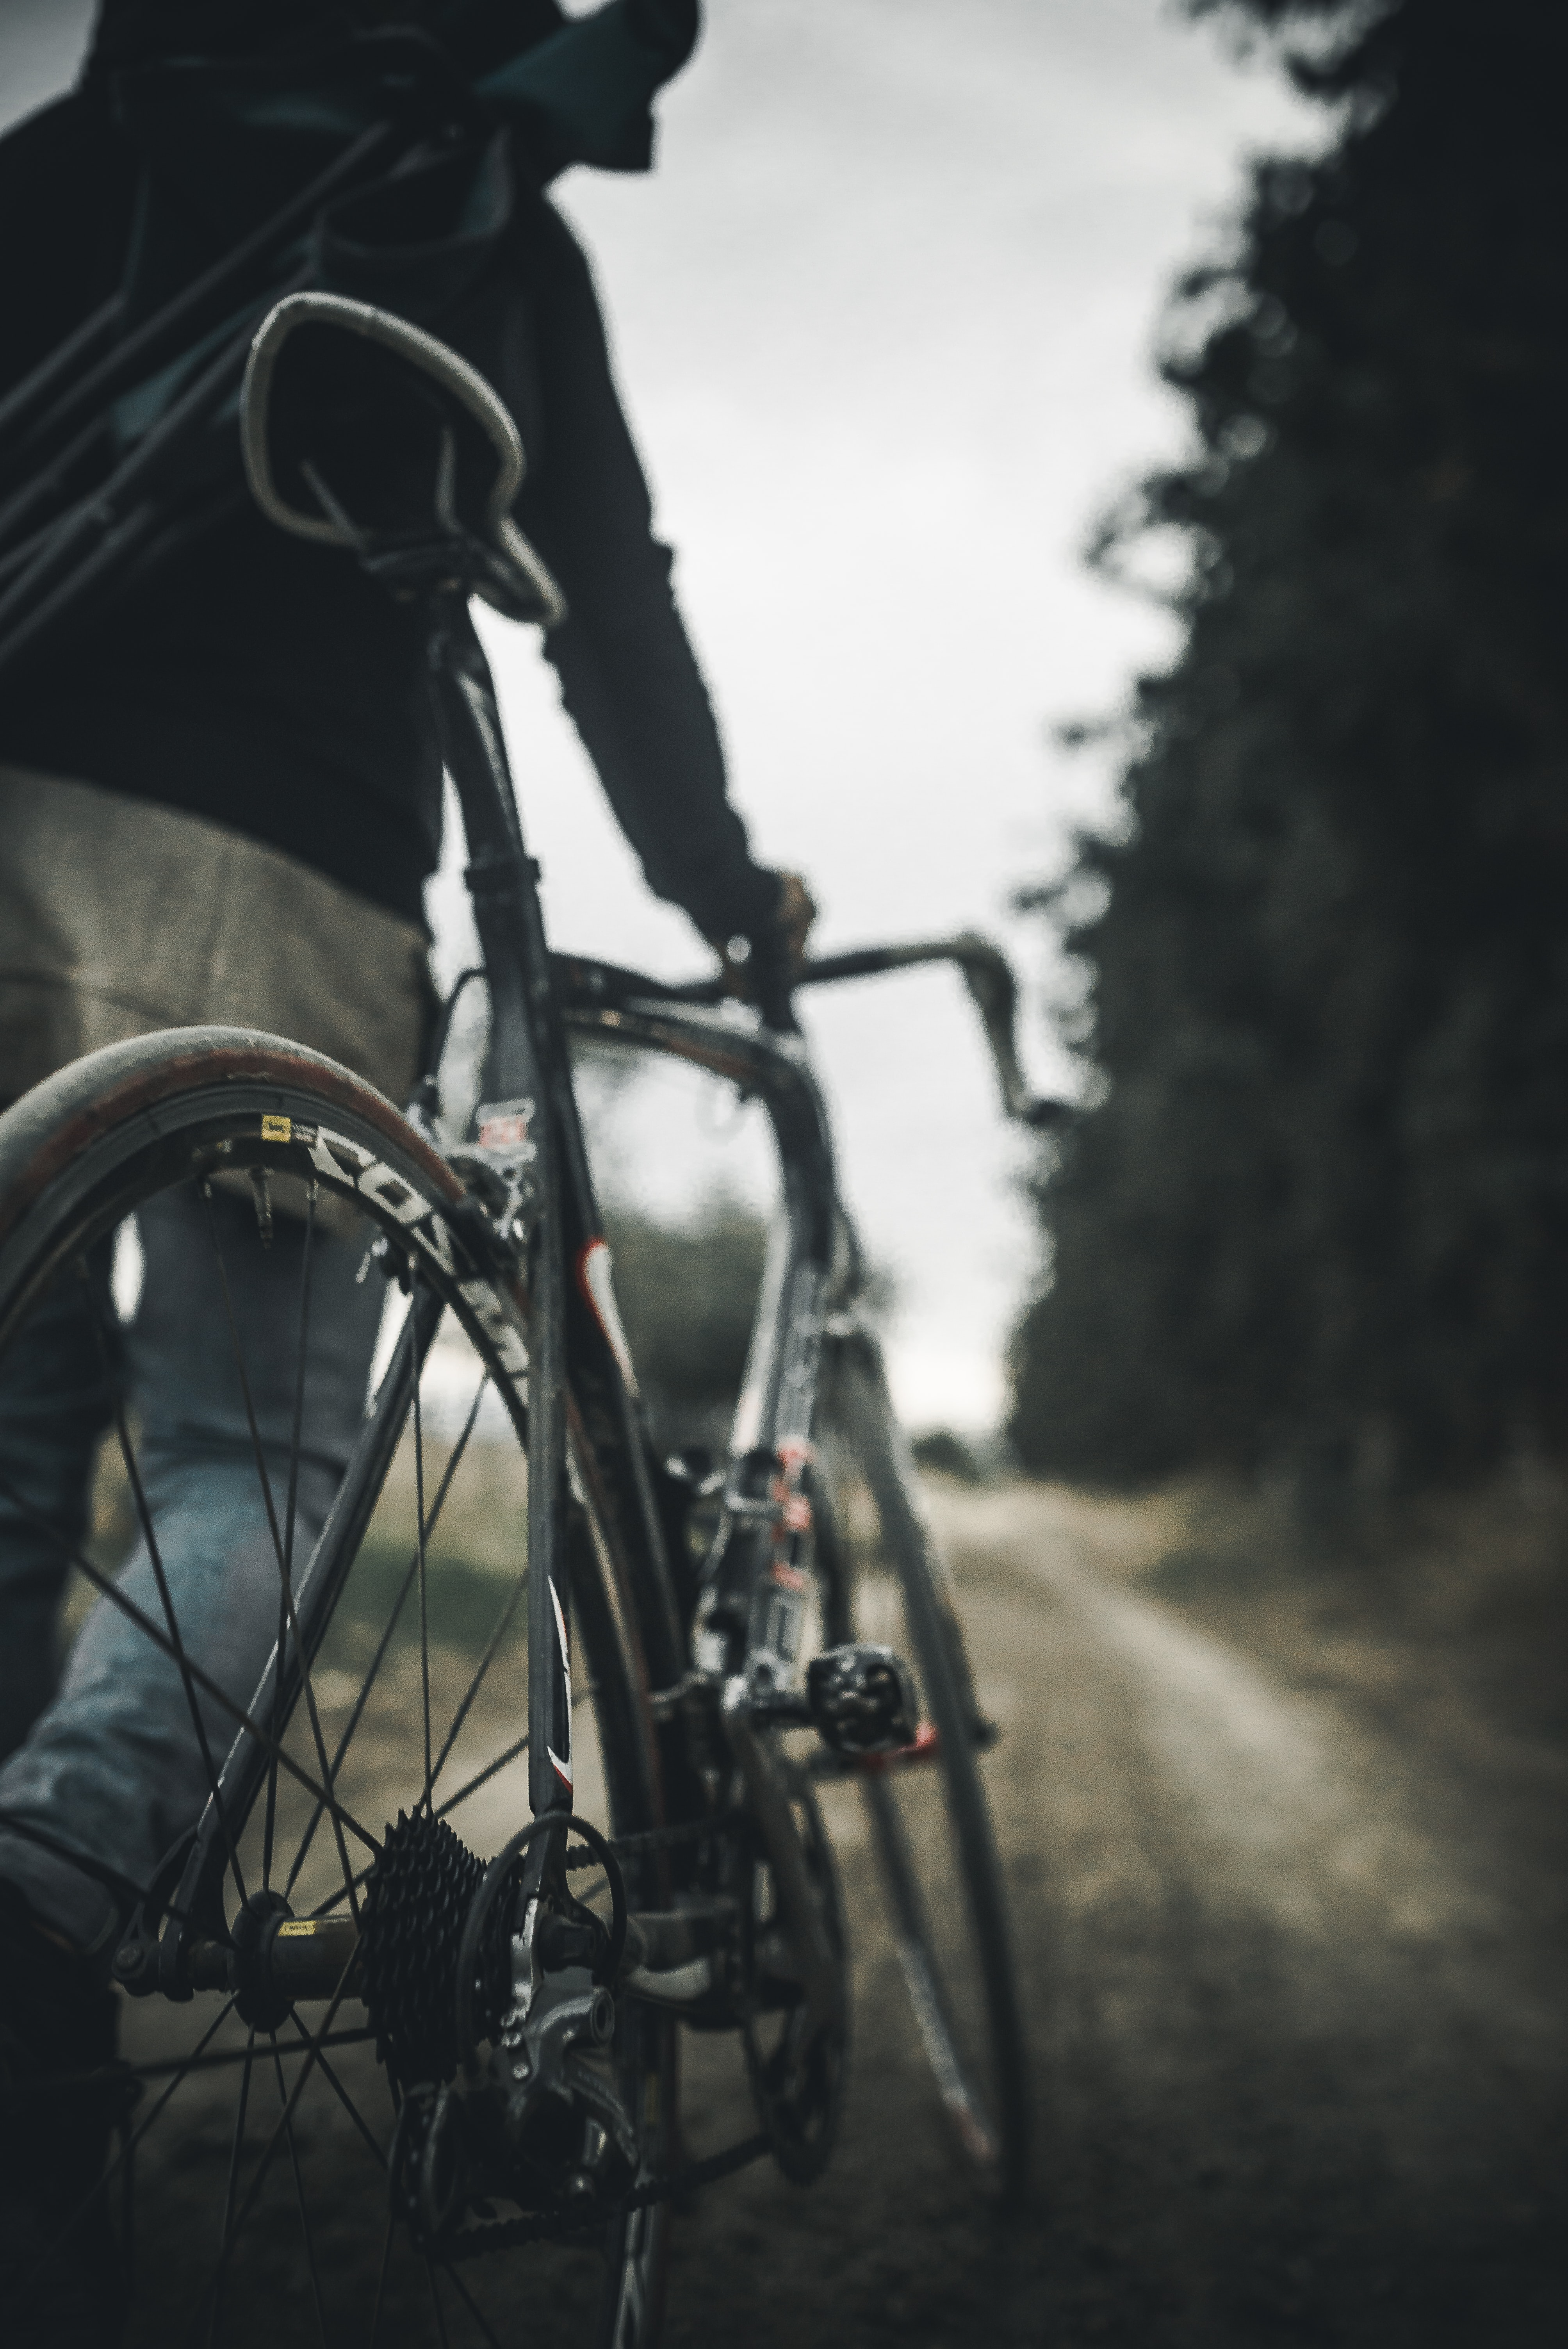 selective focus photography of person holding gray road bike on road